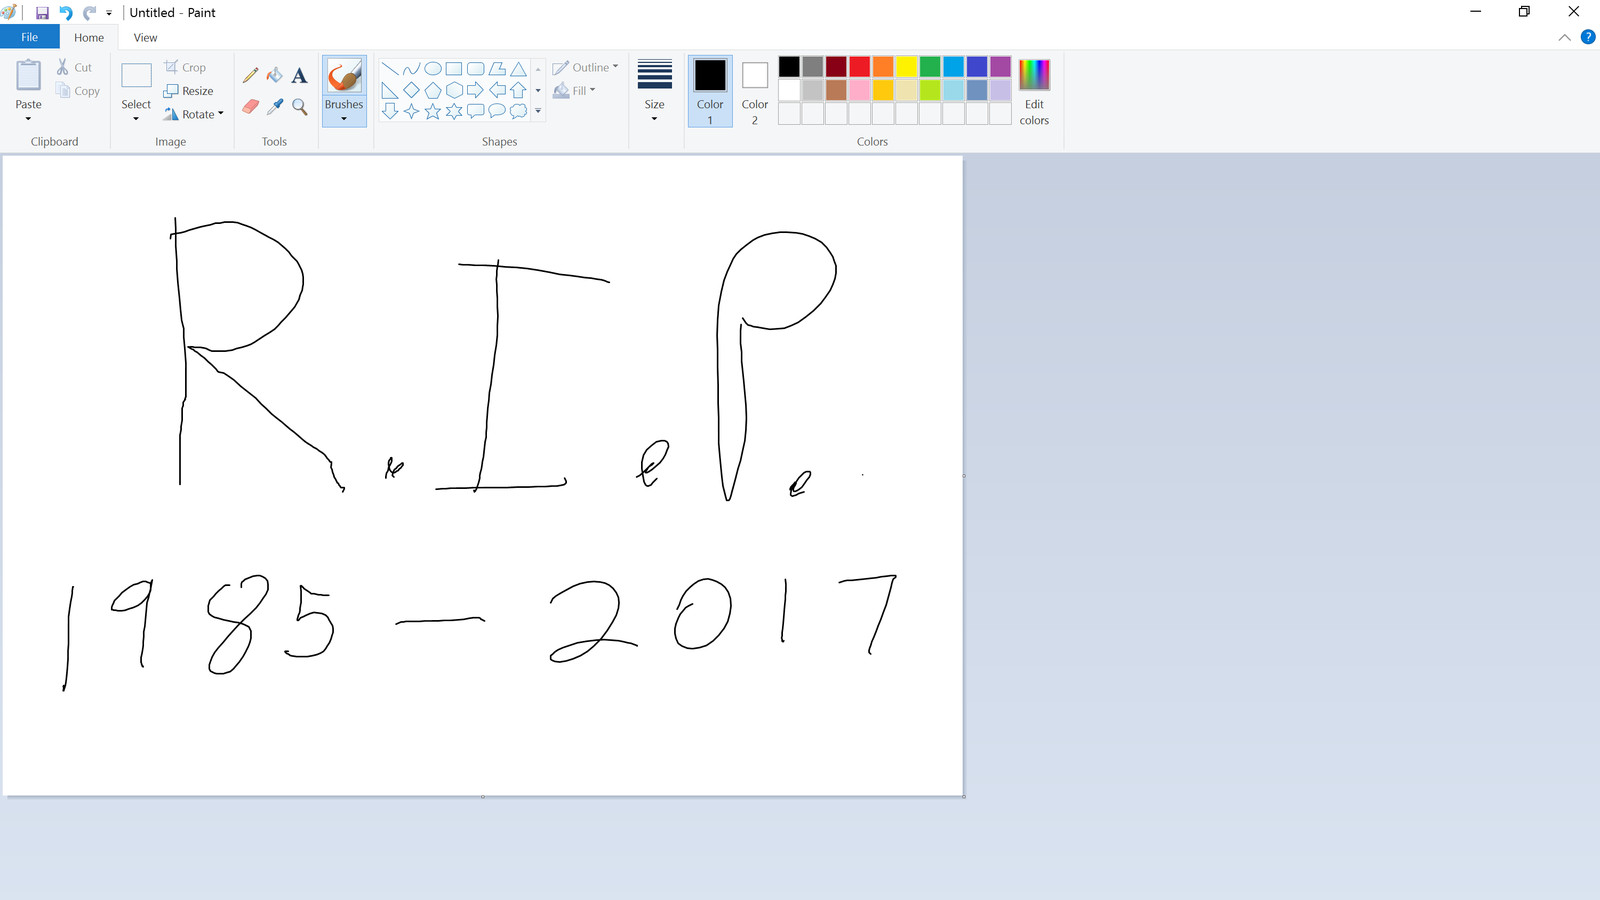 Microsoft Paint is getting killed off in the Windows 10 Fall Creators Update